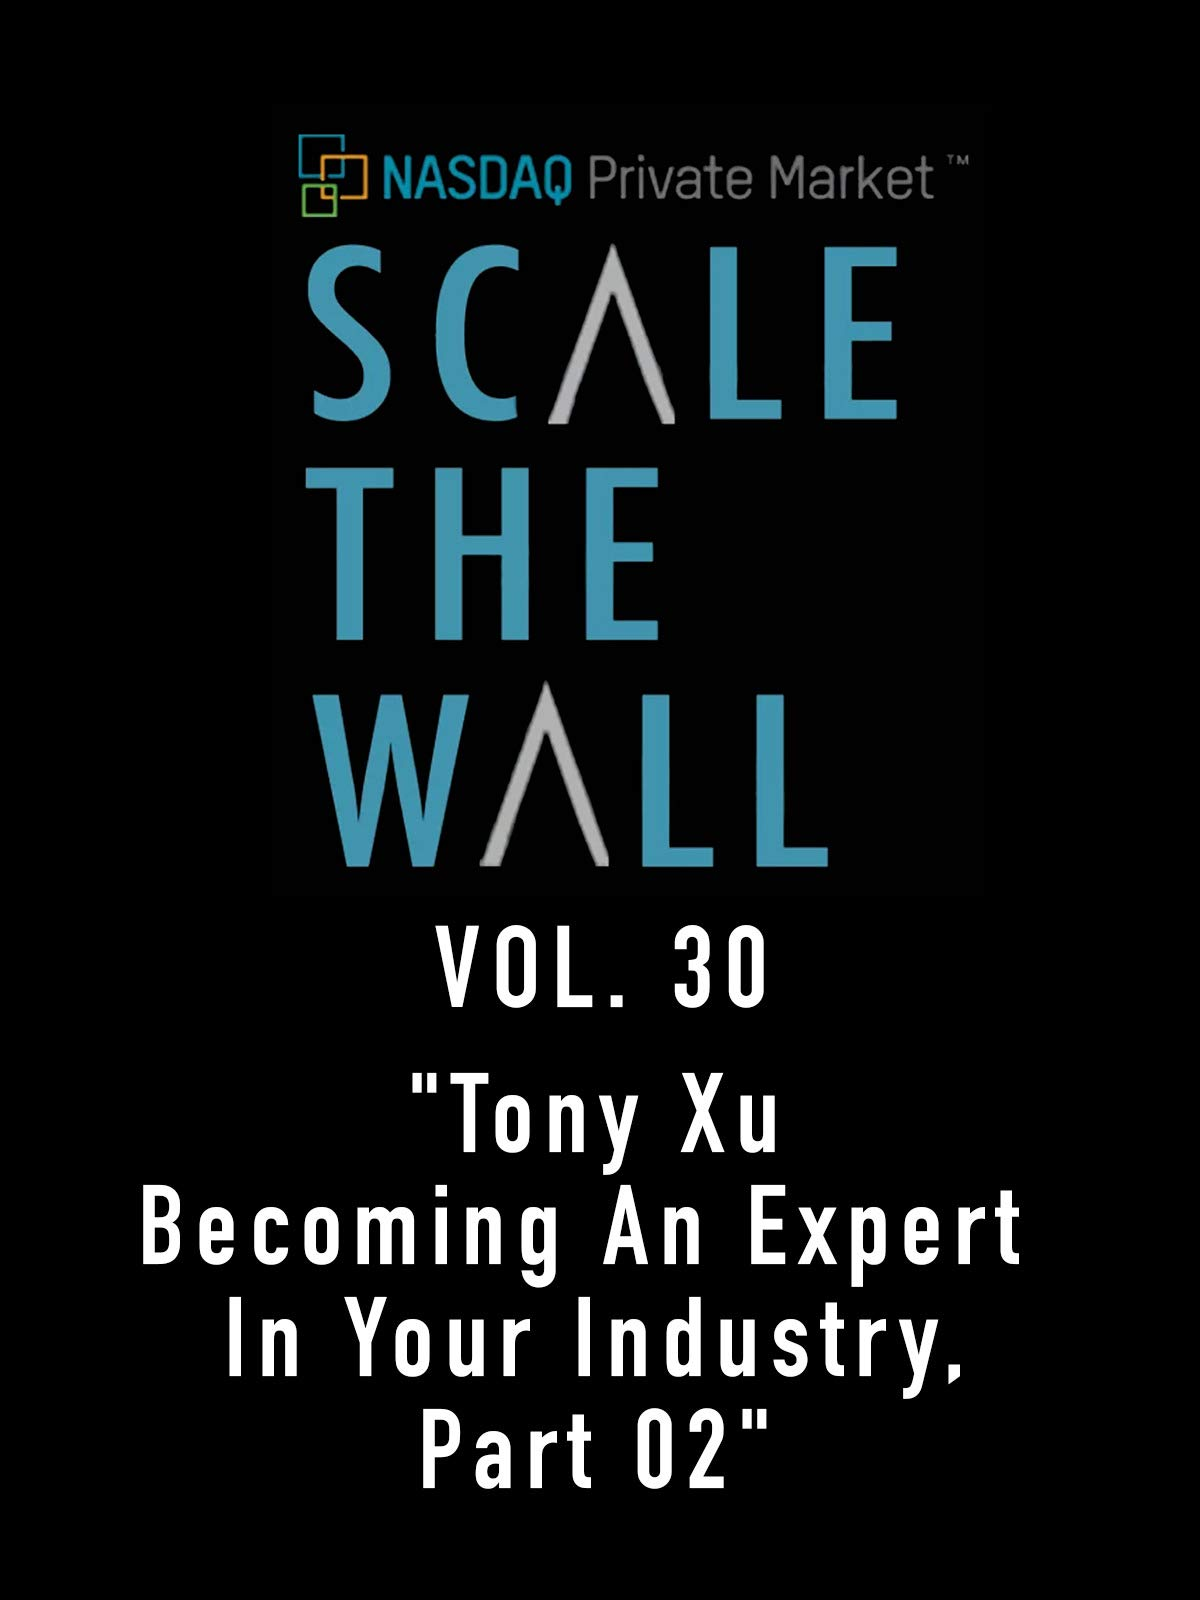 Scale the Wall Vol. 30